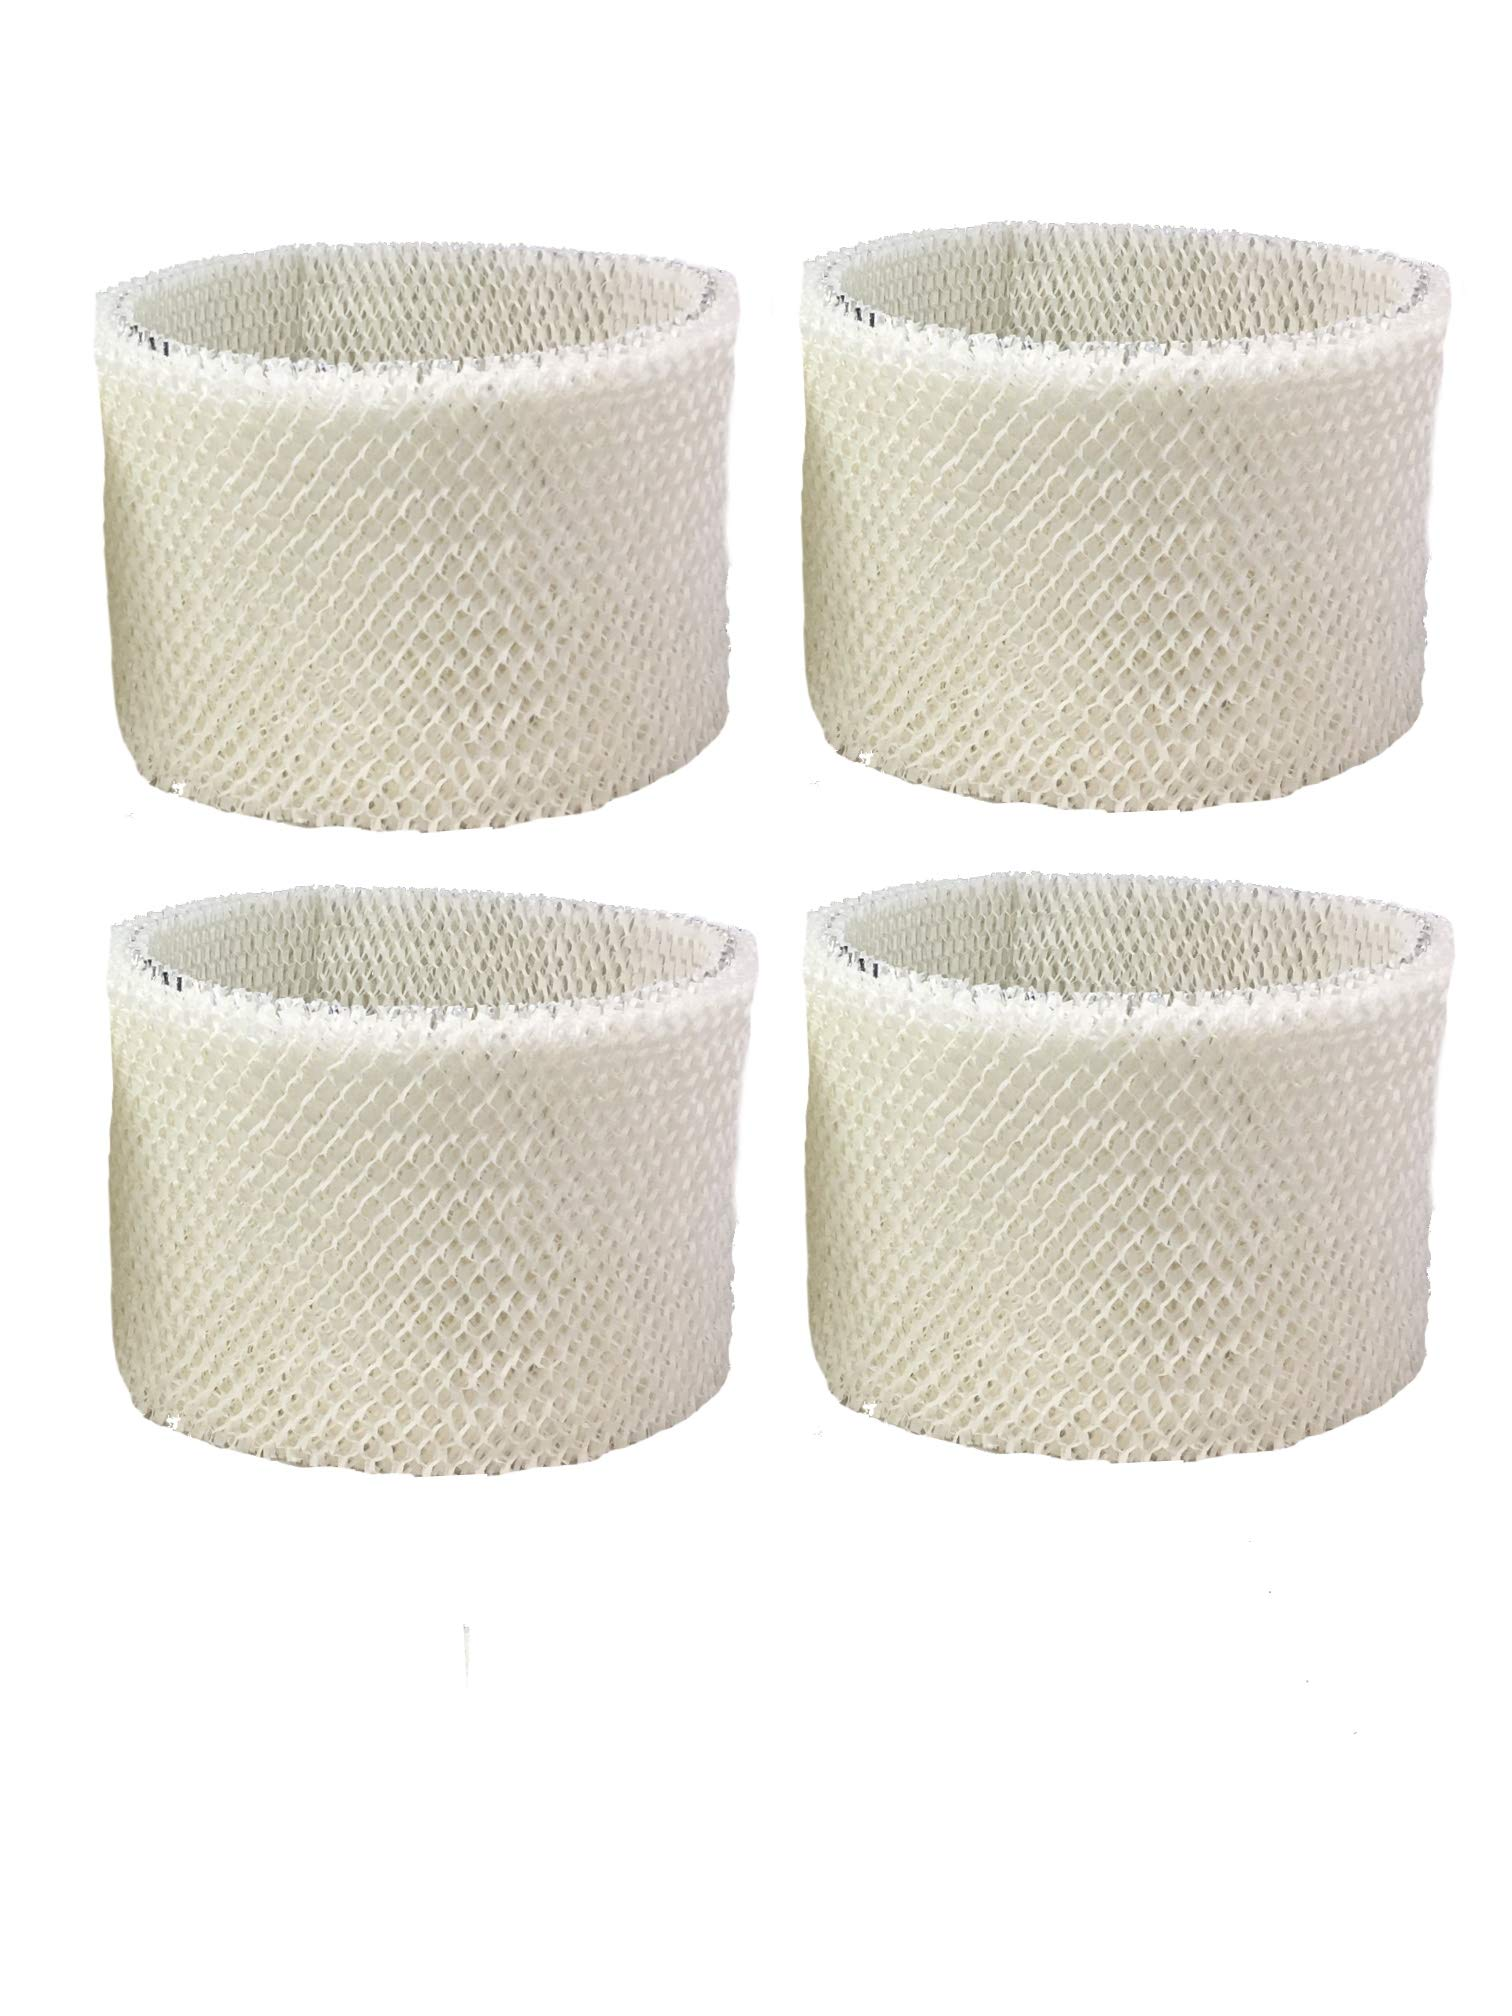 Air Filter Factory 4 Pack Compatible Replacement for Emerson MA-0600, Kenmore MA-0800, MA-80000, MAF2 Humidifier Wick Filters by Air Filter Factory